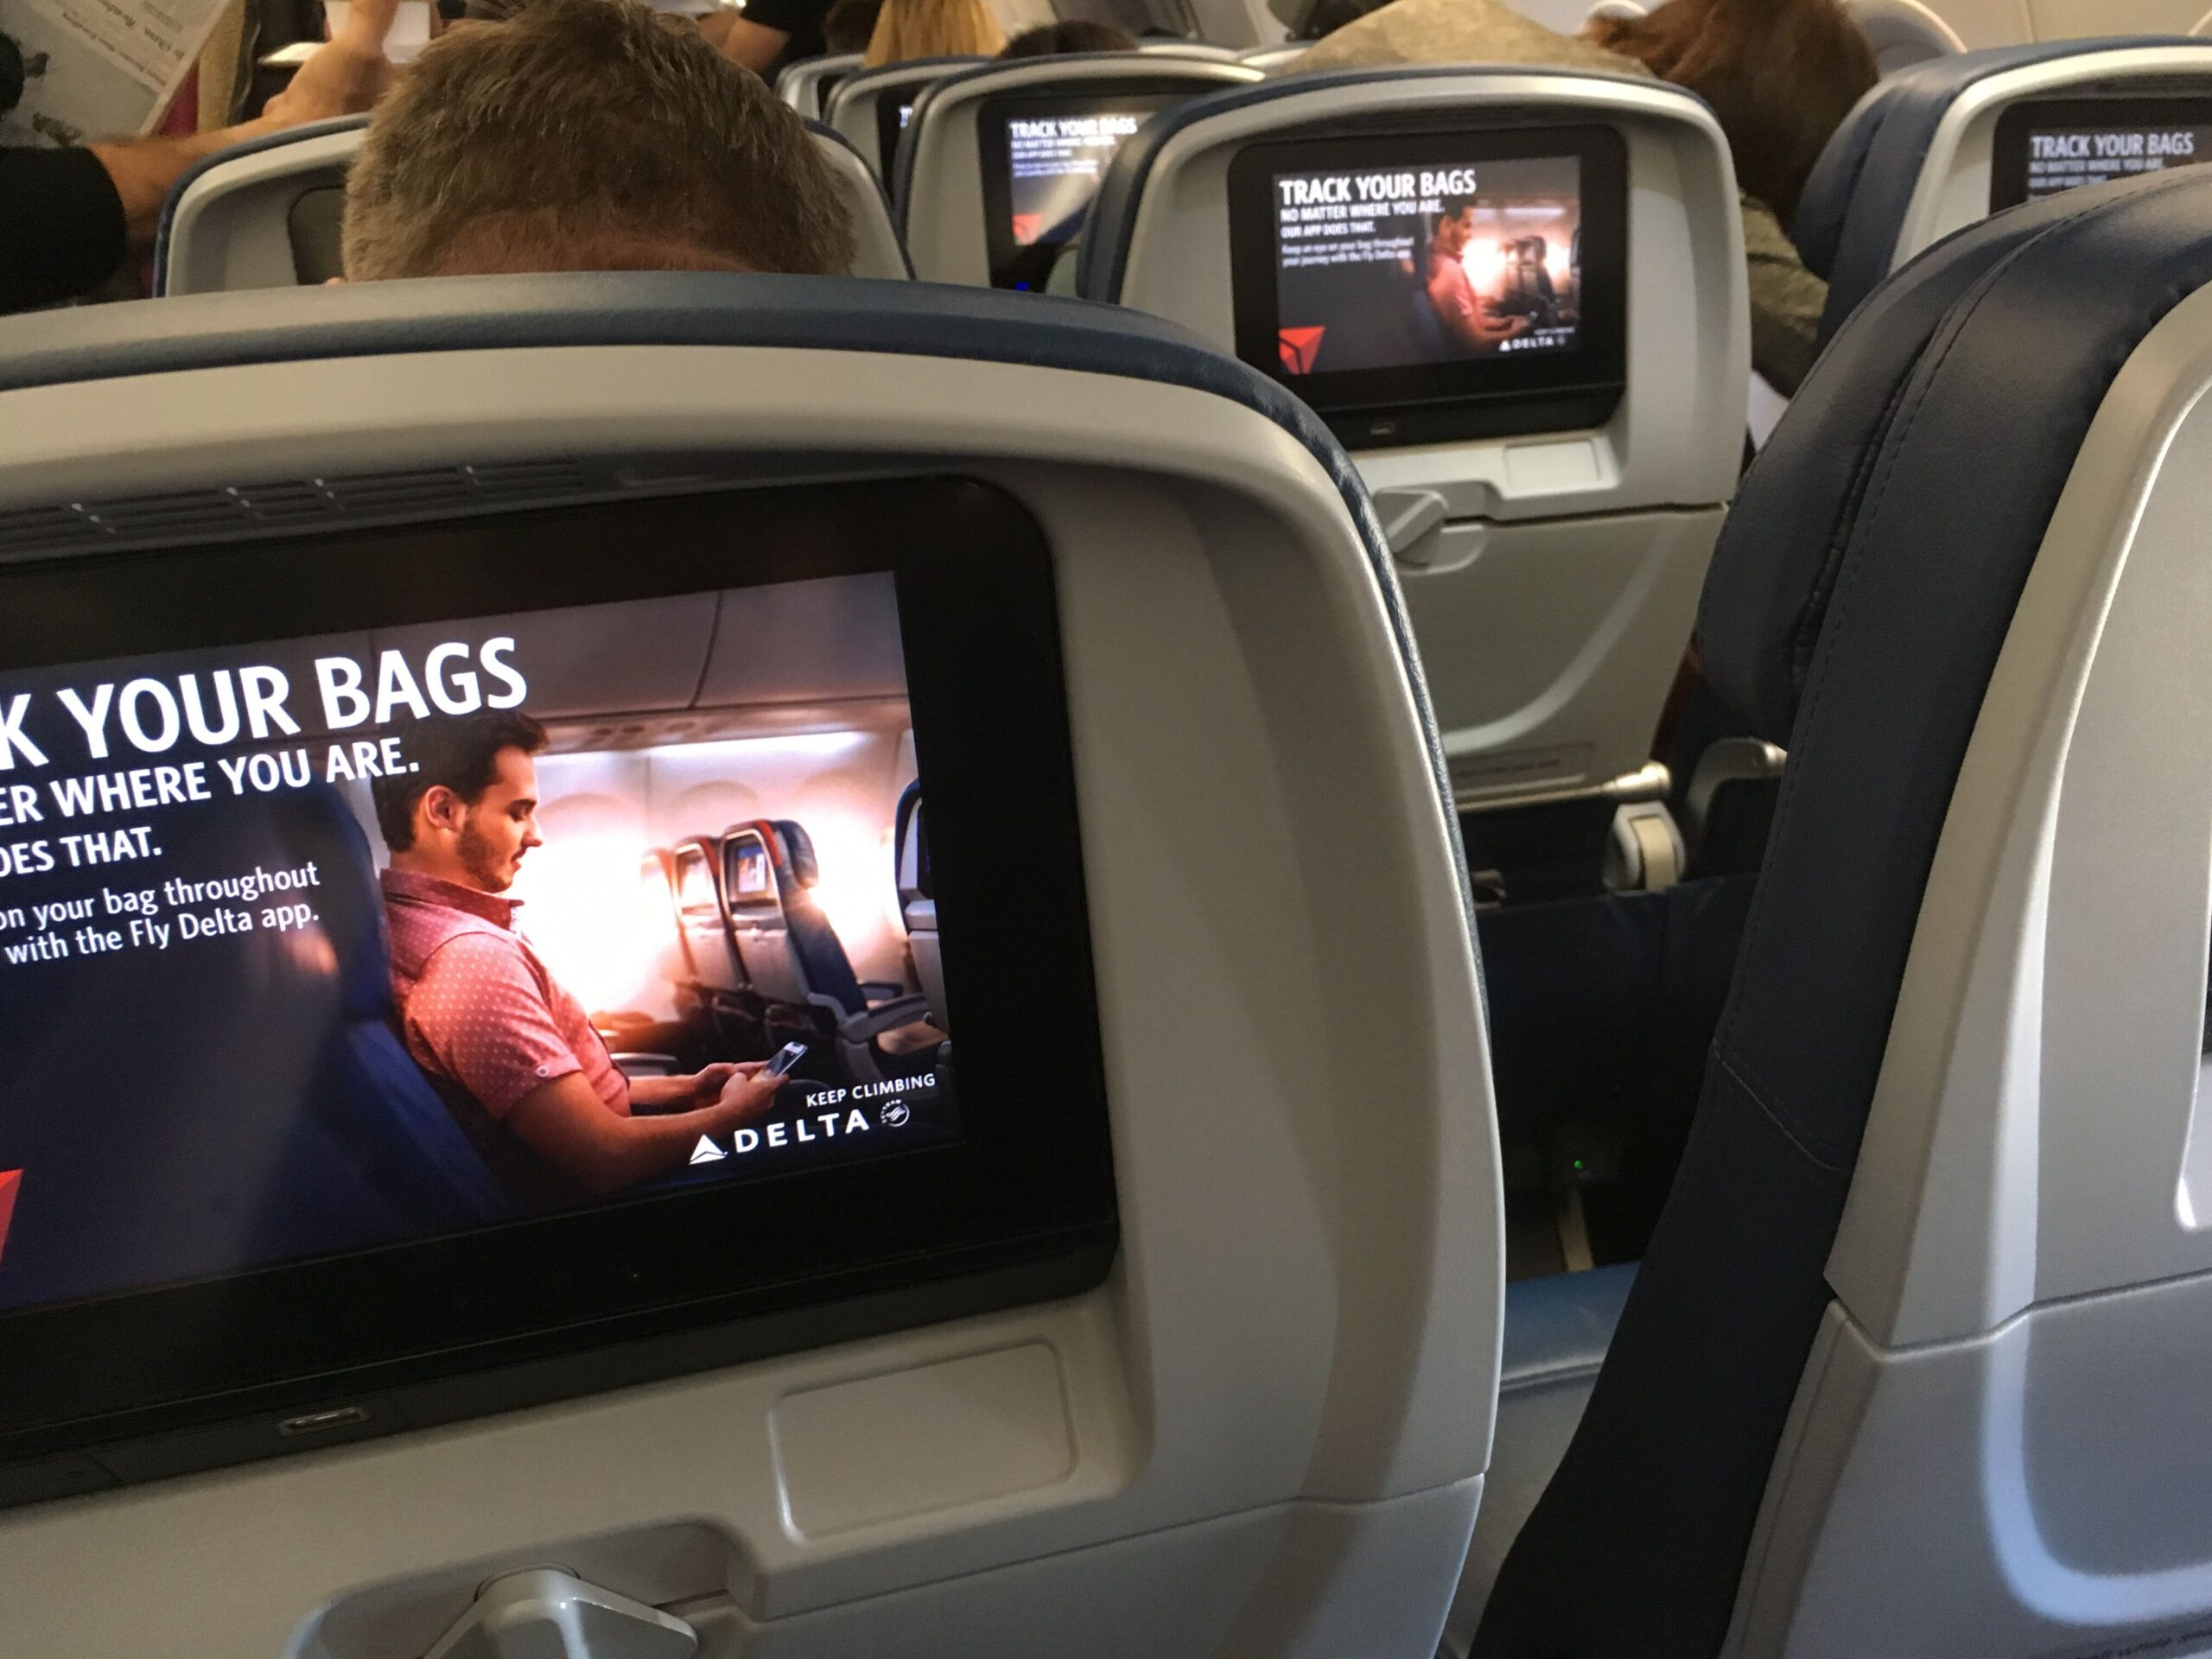 John Fulton's photo shows the in-flight video screens on the back of plane seat headrests